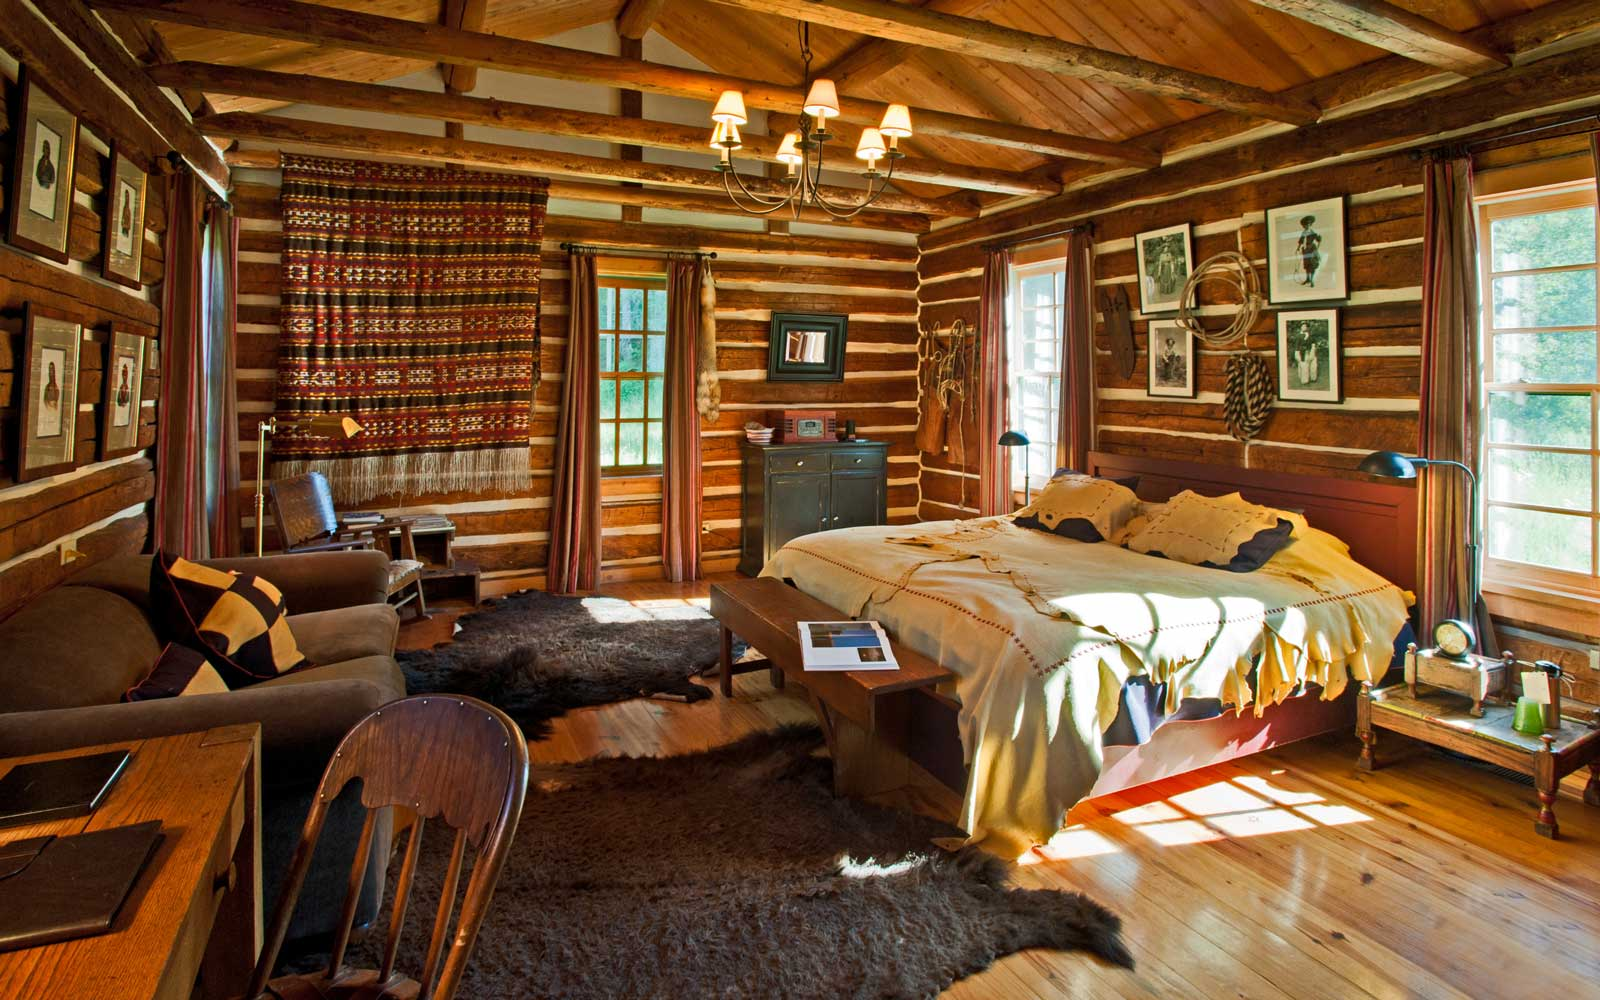 Interior of the Major Ross Cabin at Dunton Hot Springs, in Colorado